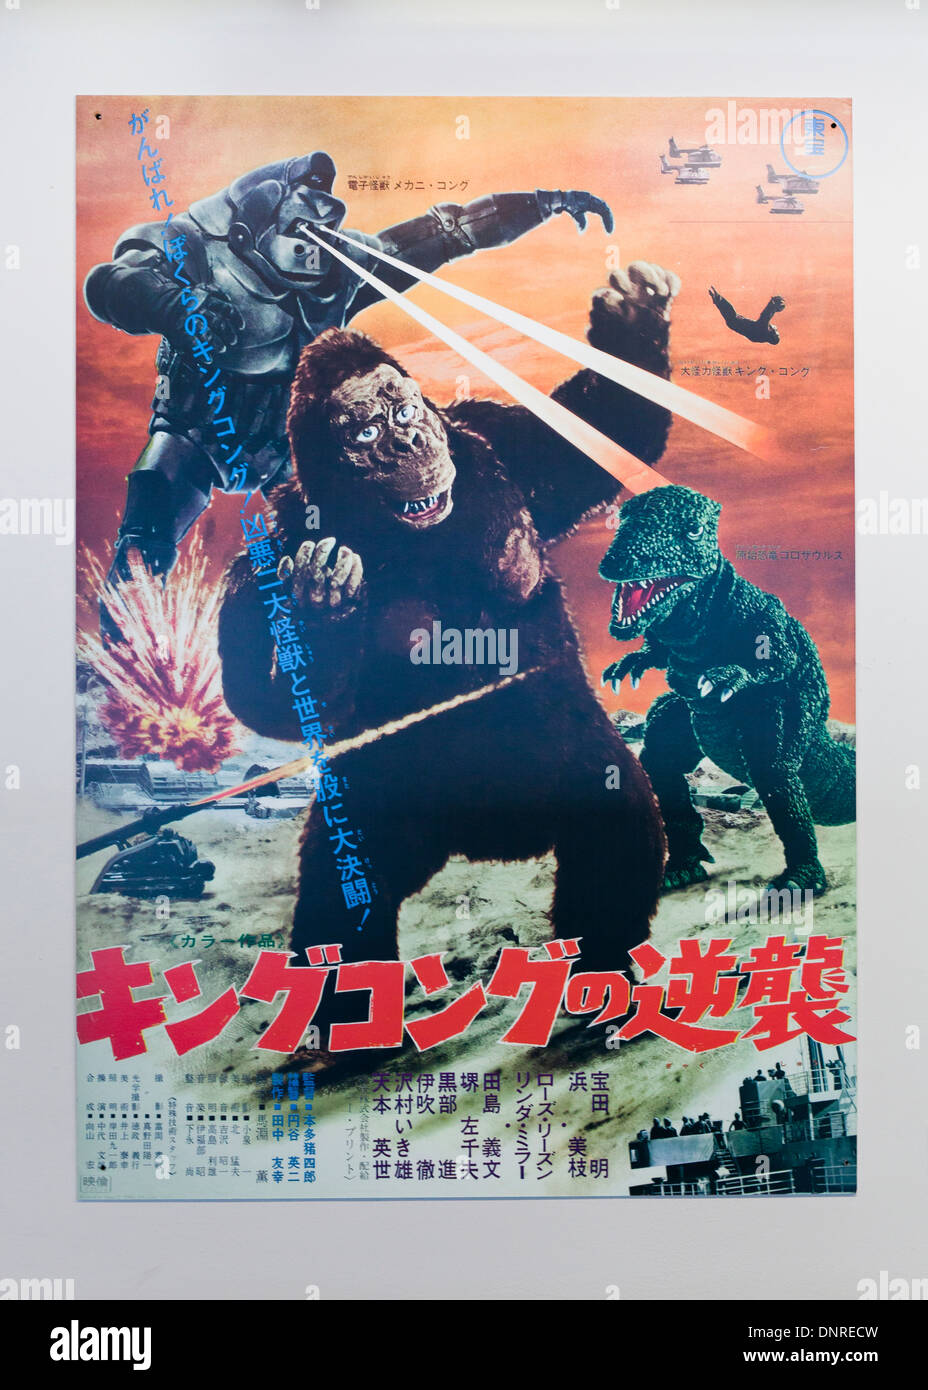 King Kong Escapes! 1967 Japanese Vintage Movie Poster